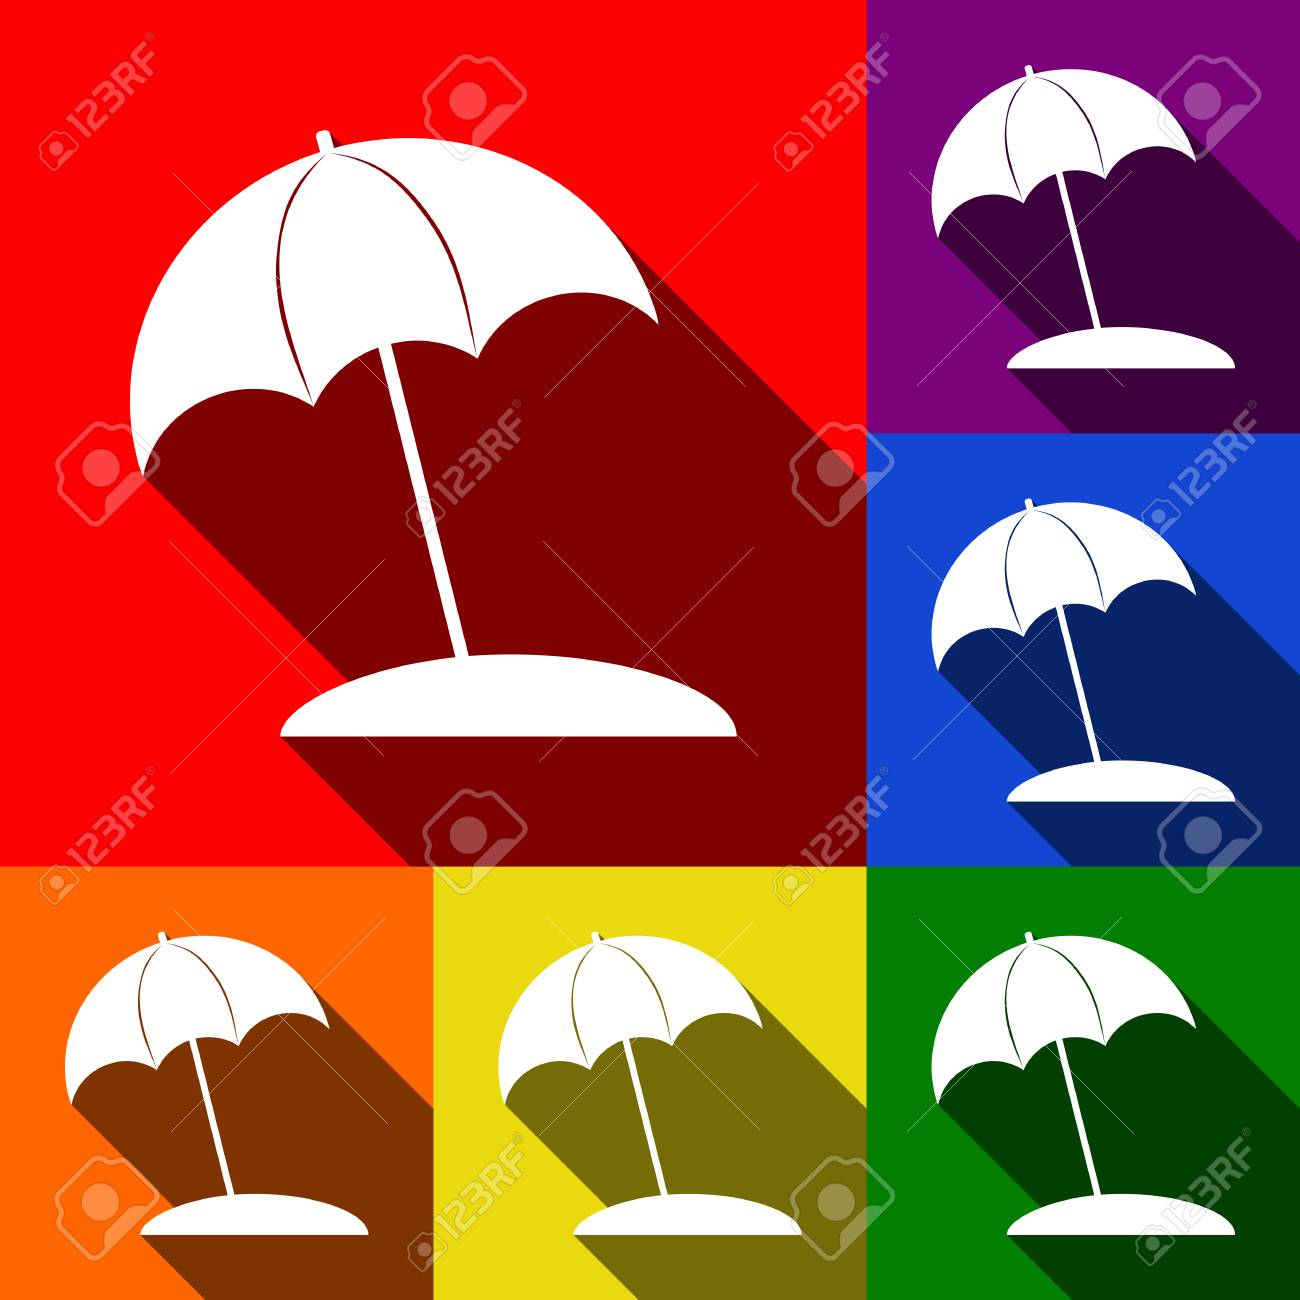 Sonnenliege Clipart Umbrella And Sun Lounger Sign Vector Set Of Icons With Flat